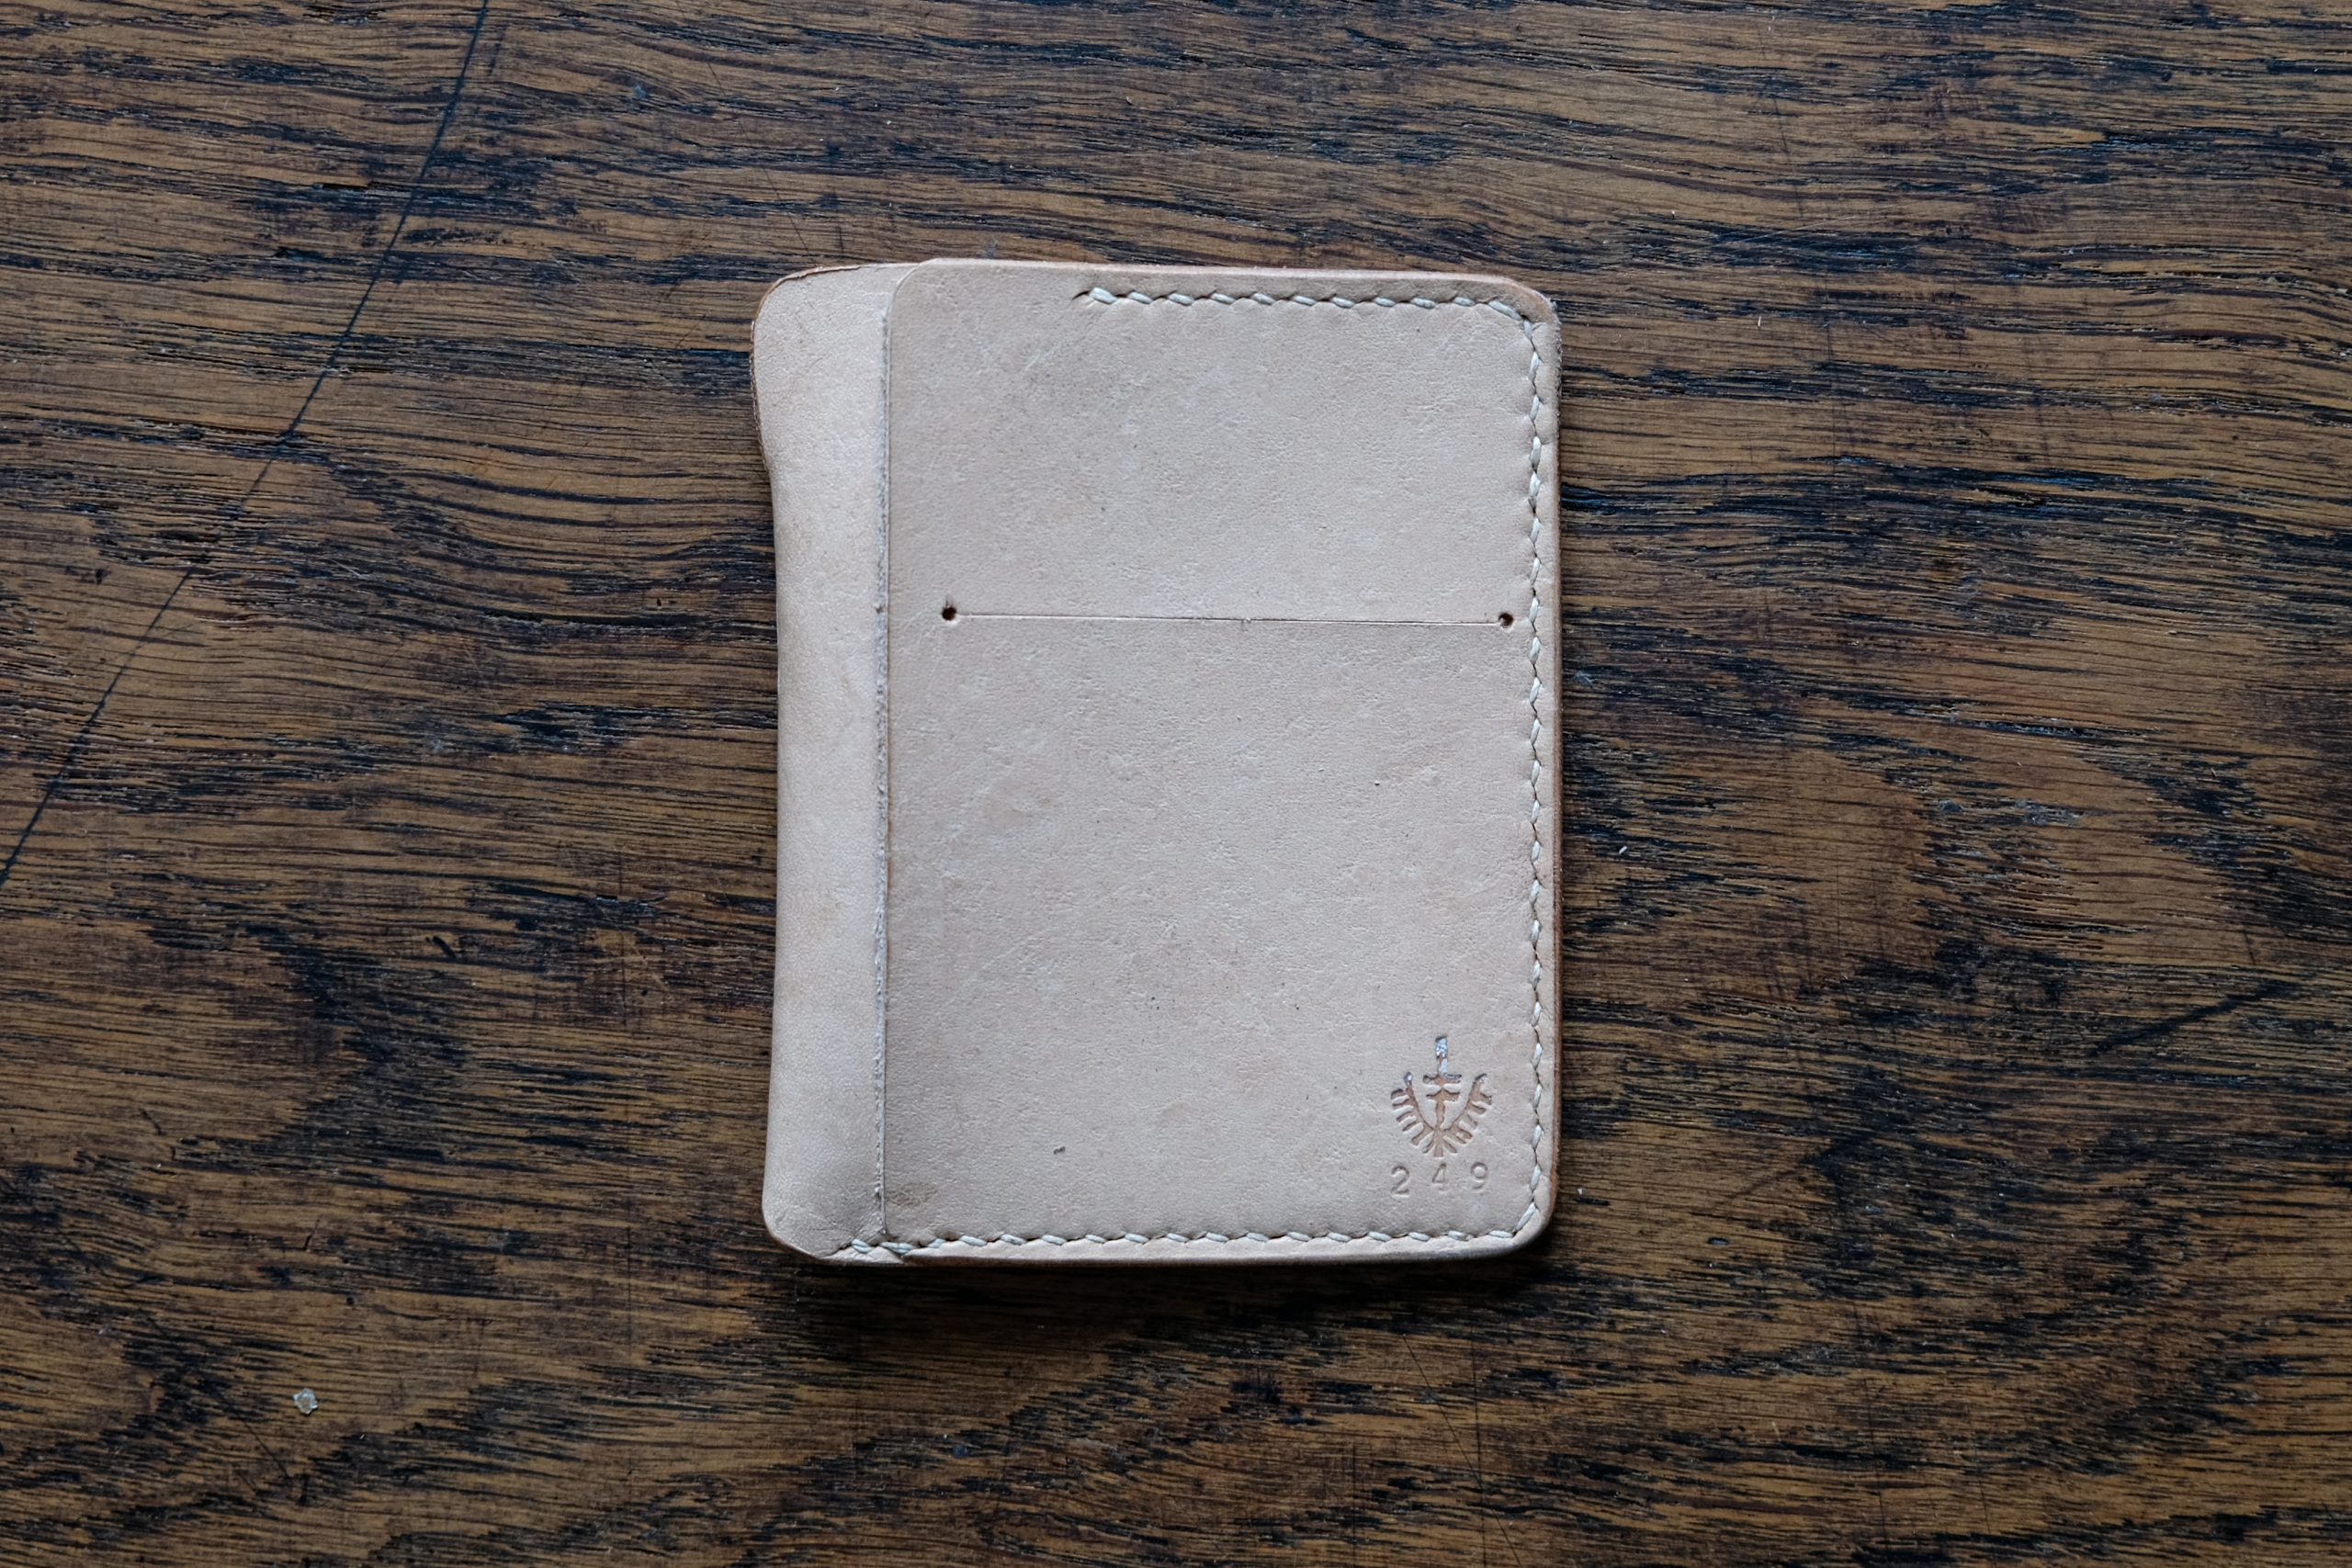 lerif designs Vale leather wallet in natural demo on wood background